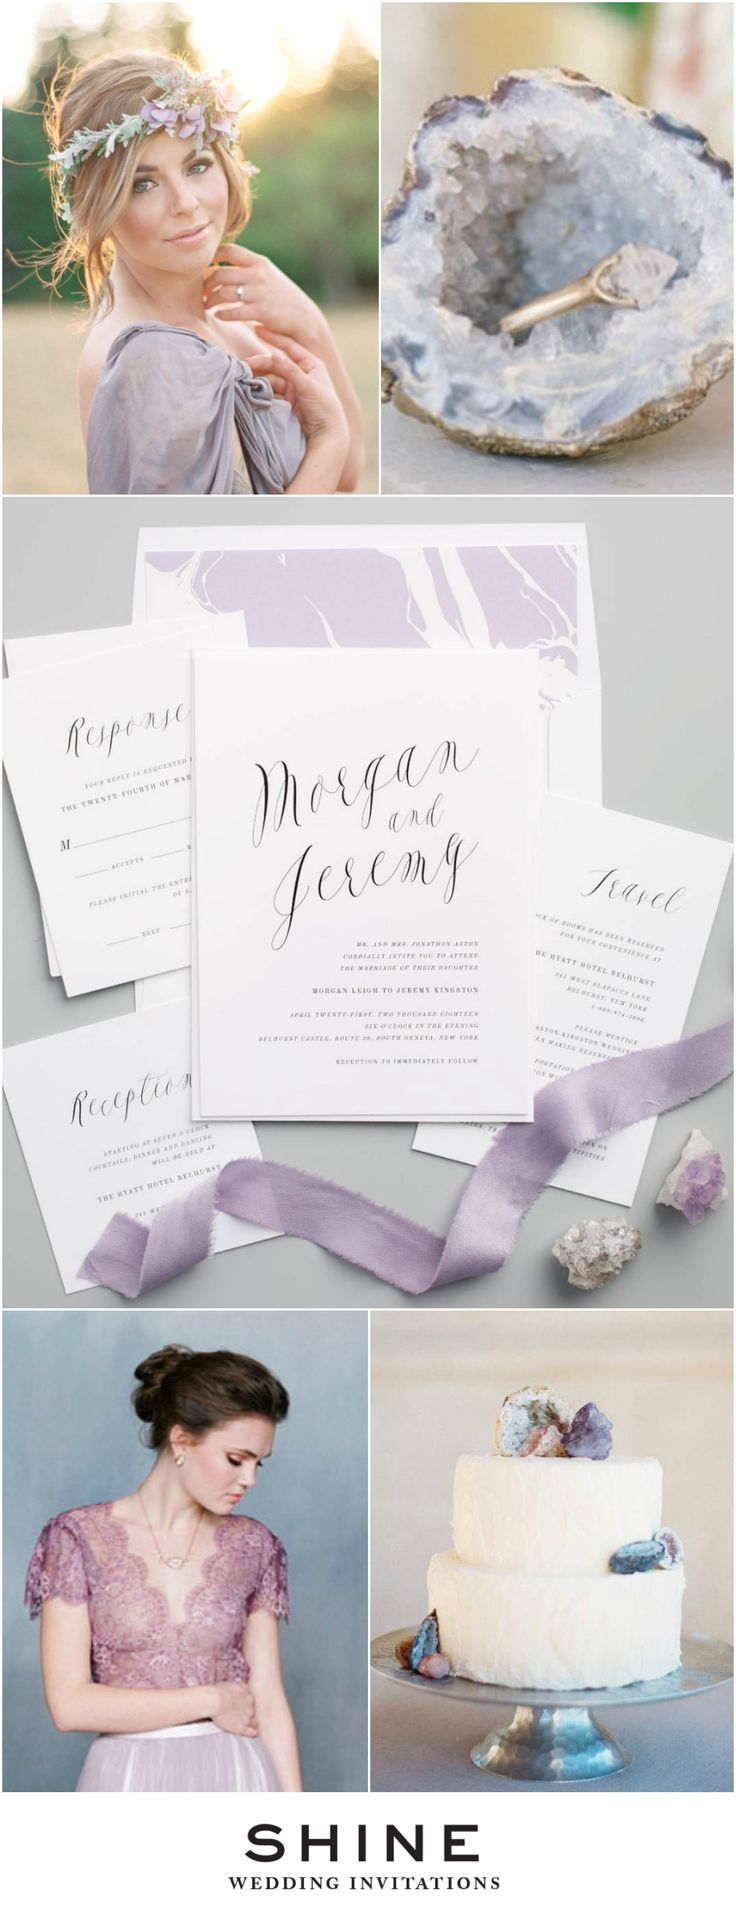 56 Best Photo Wedding Invitations Images On Pinterest Photo